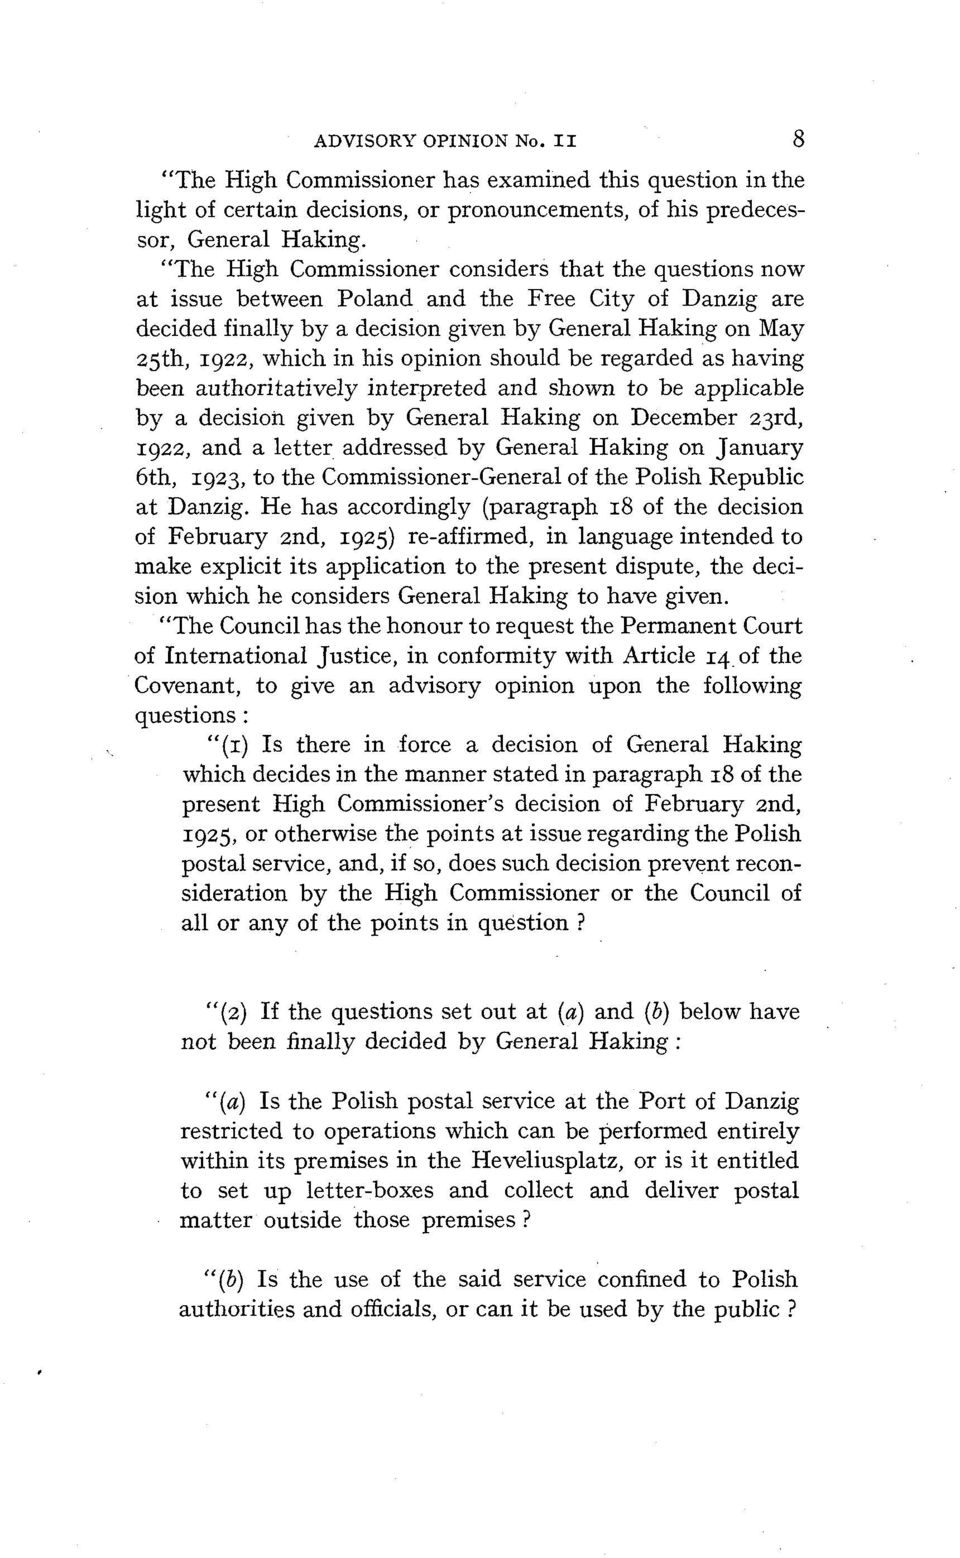 opinion should be regarded as having been authoritatively interpreted and shown to be applicable by a decision given by General Haking on December 23rd, 1922, and a letter addressed by General Haking